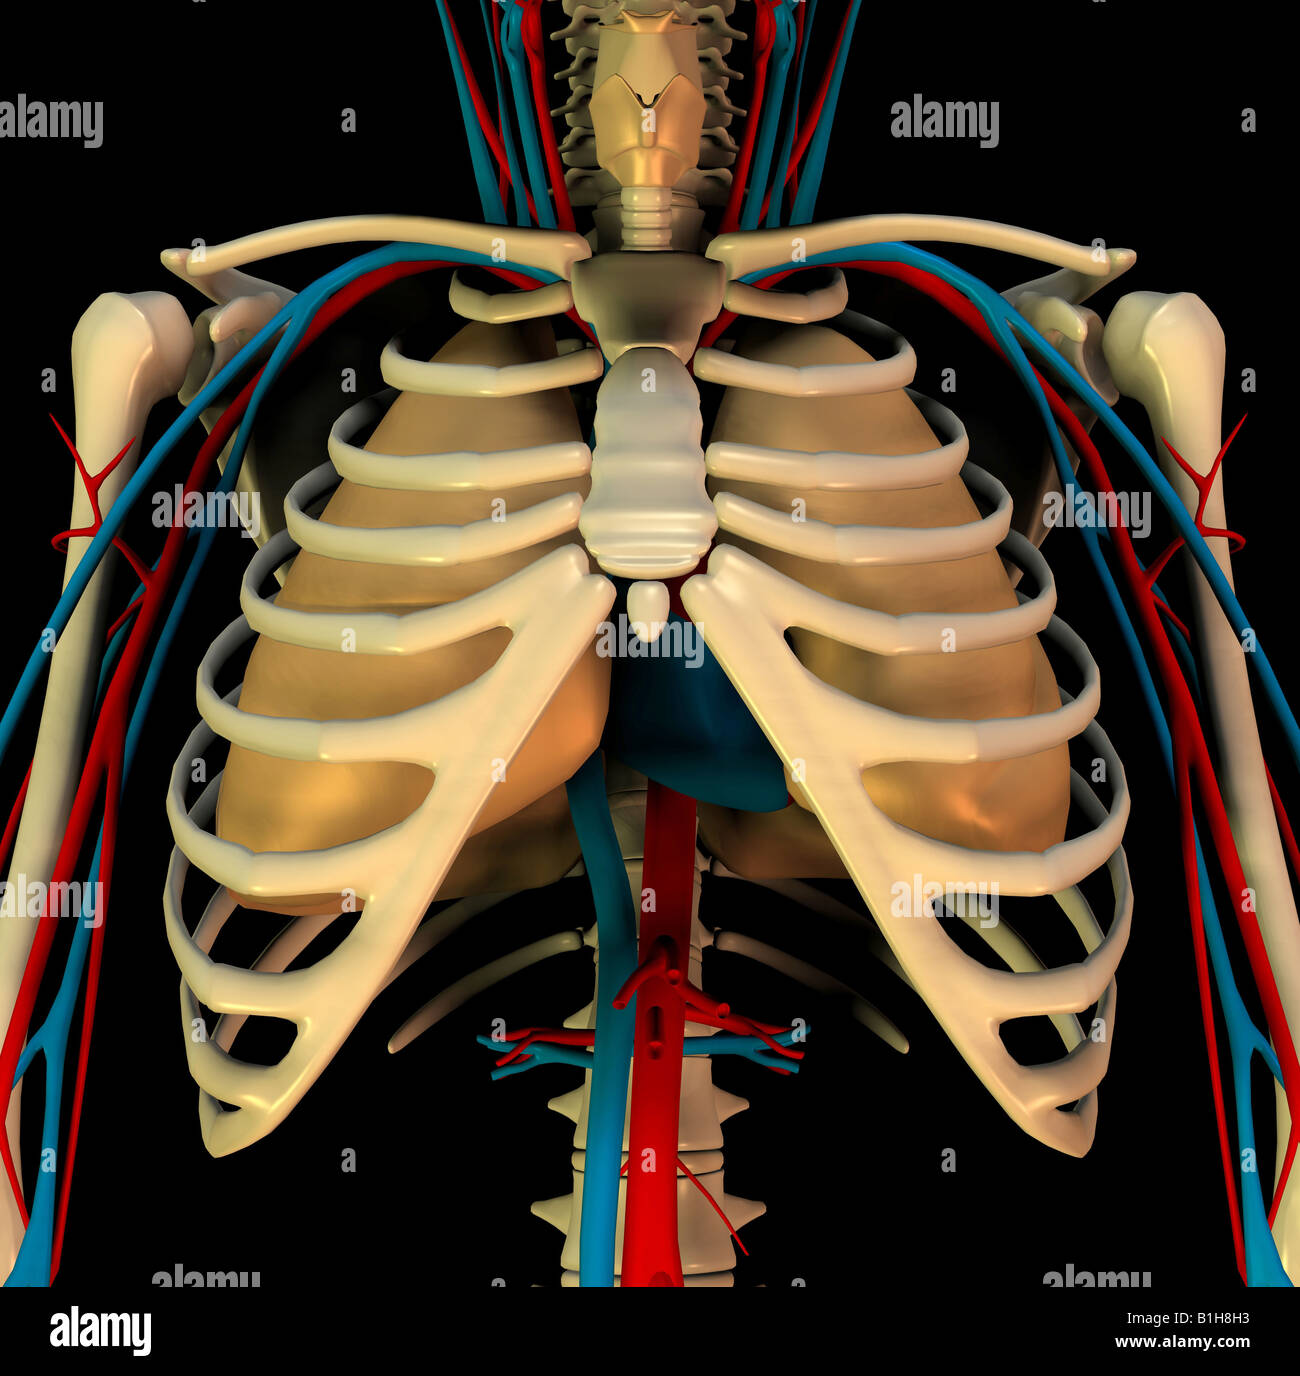 anatomy circulation heart lungs - Stock Image